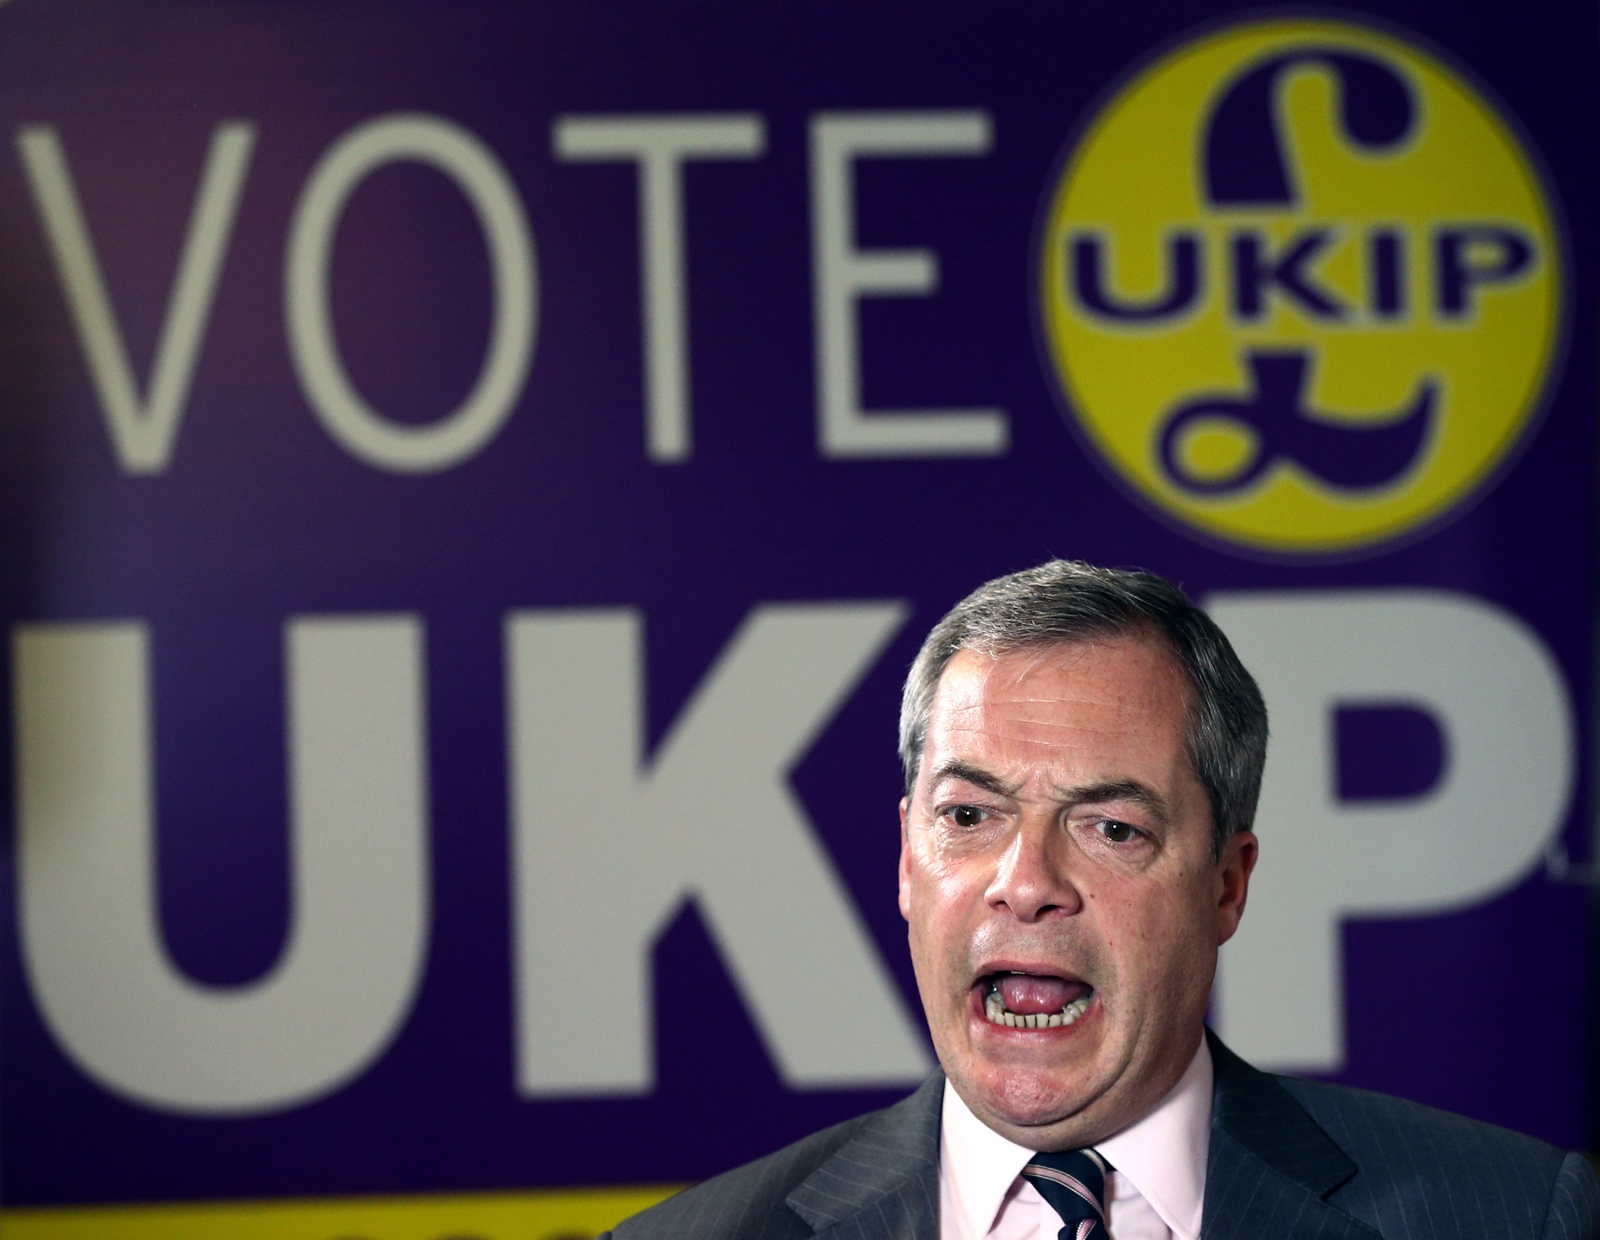 Nigel Farage suggest Muslim voices are responsible for rising anti-semitism in Britain